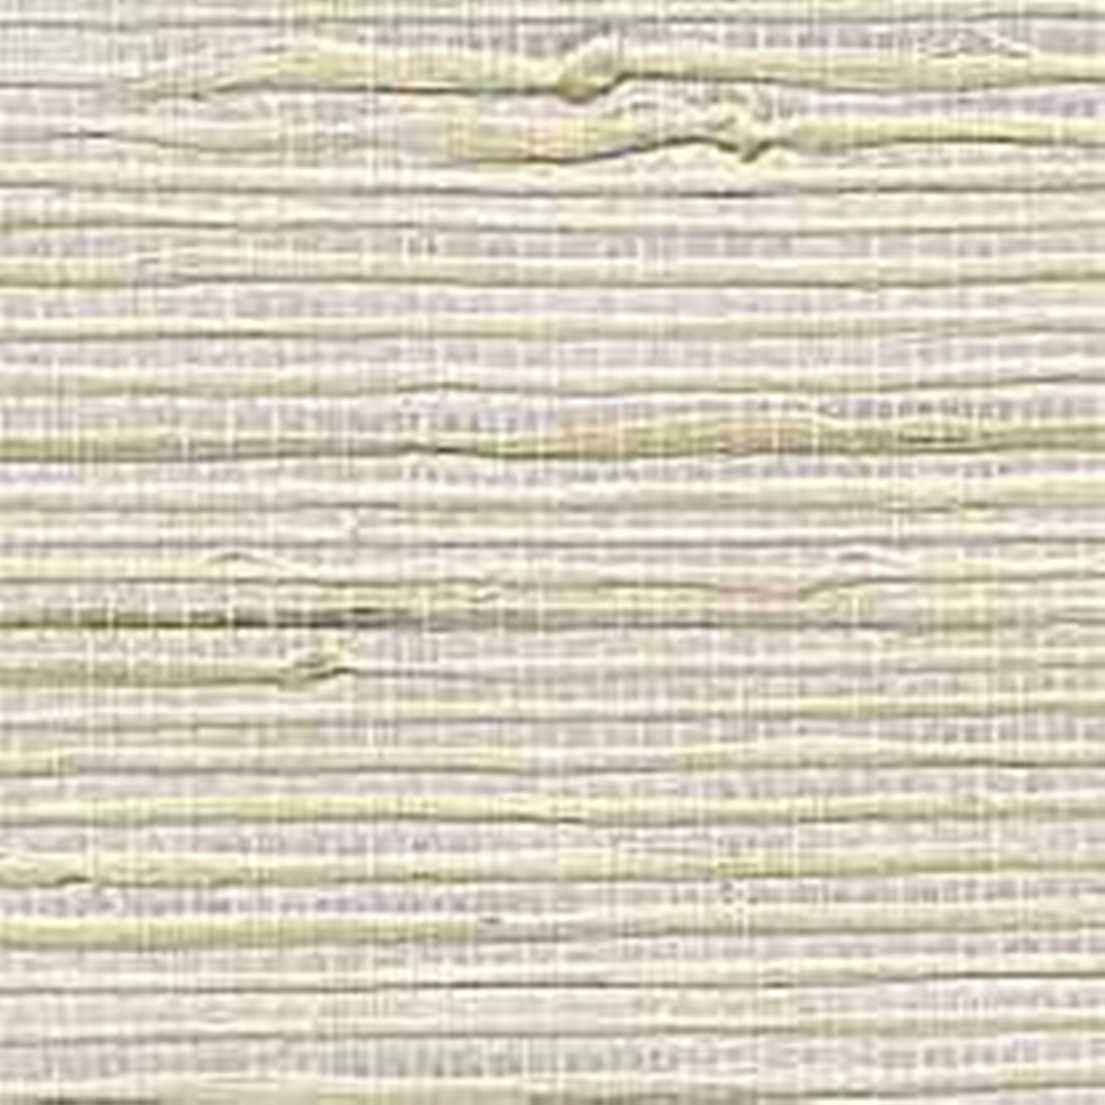 York Wallcoverings Co2090 Candice Olson Dimensional Surfaces Metallic Background Grasscloth Wallpaper Silver Met Grasscloth Wallpaper Grasscloth Candice Olson